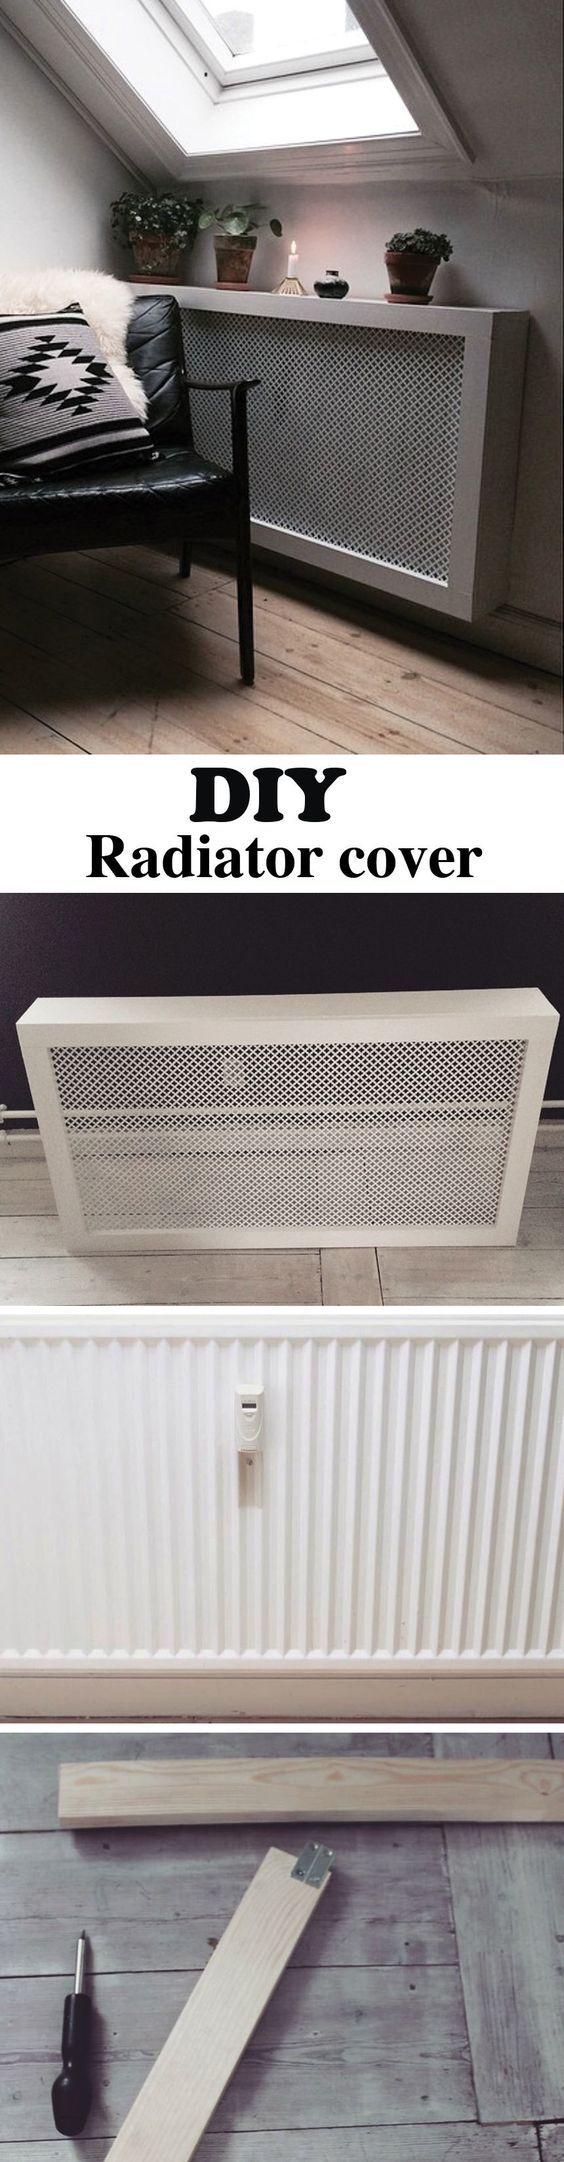 This DIY radiator cover is easy and cheap to make. It's the perfect cover for that ugly radiator in your apartment and a bonus shelf space.